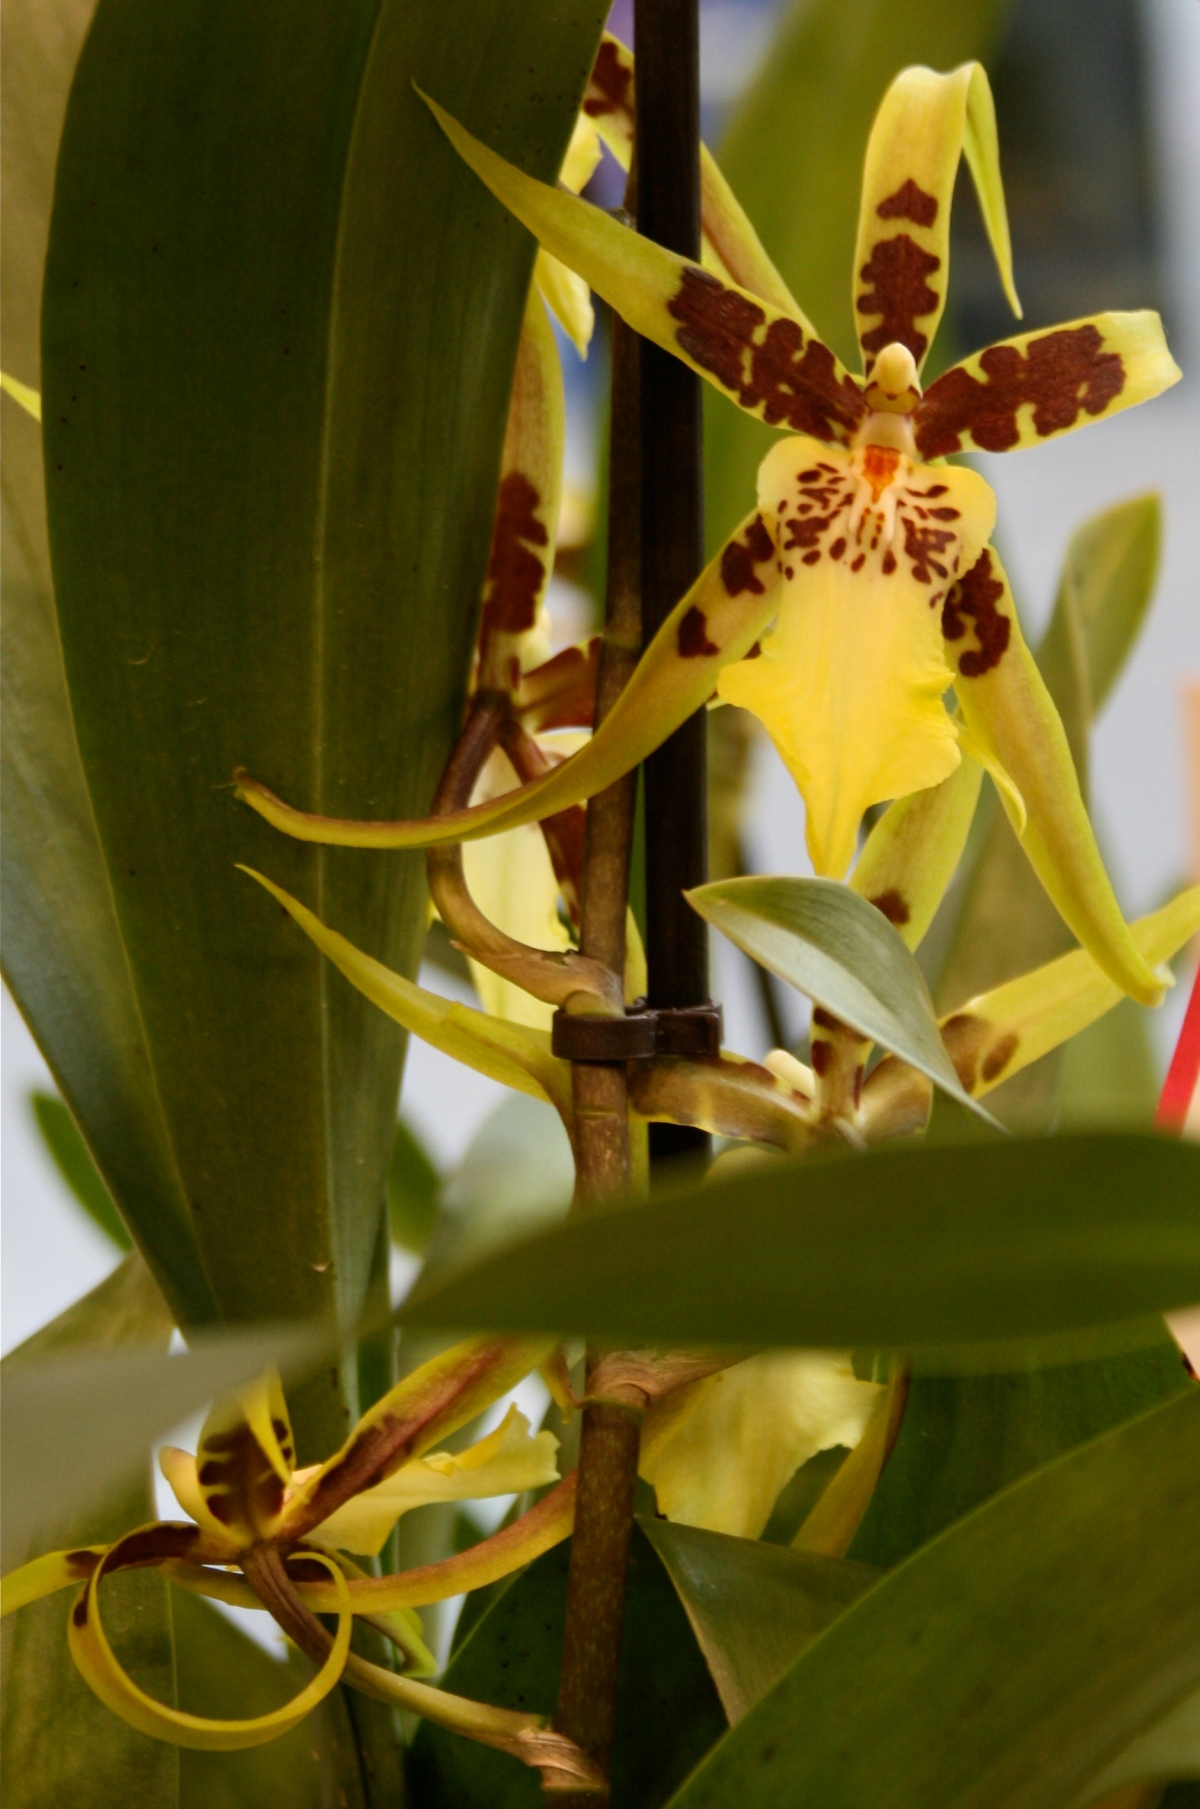 Spider orchid plant with flowers